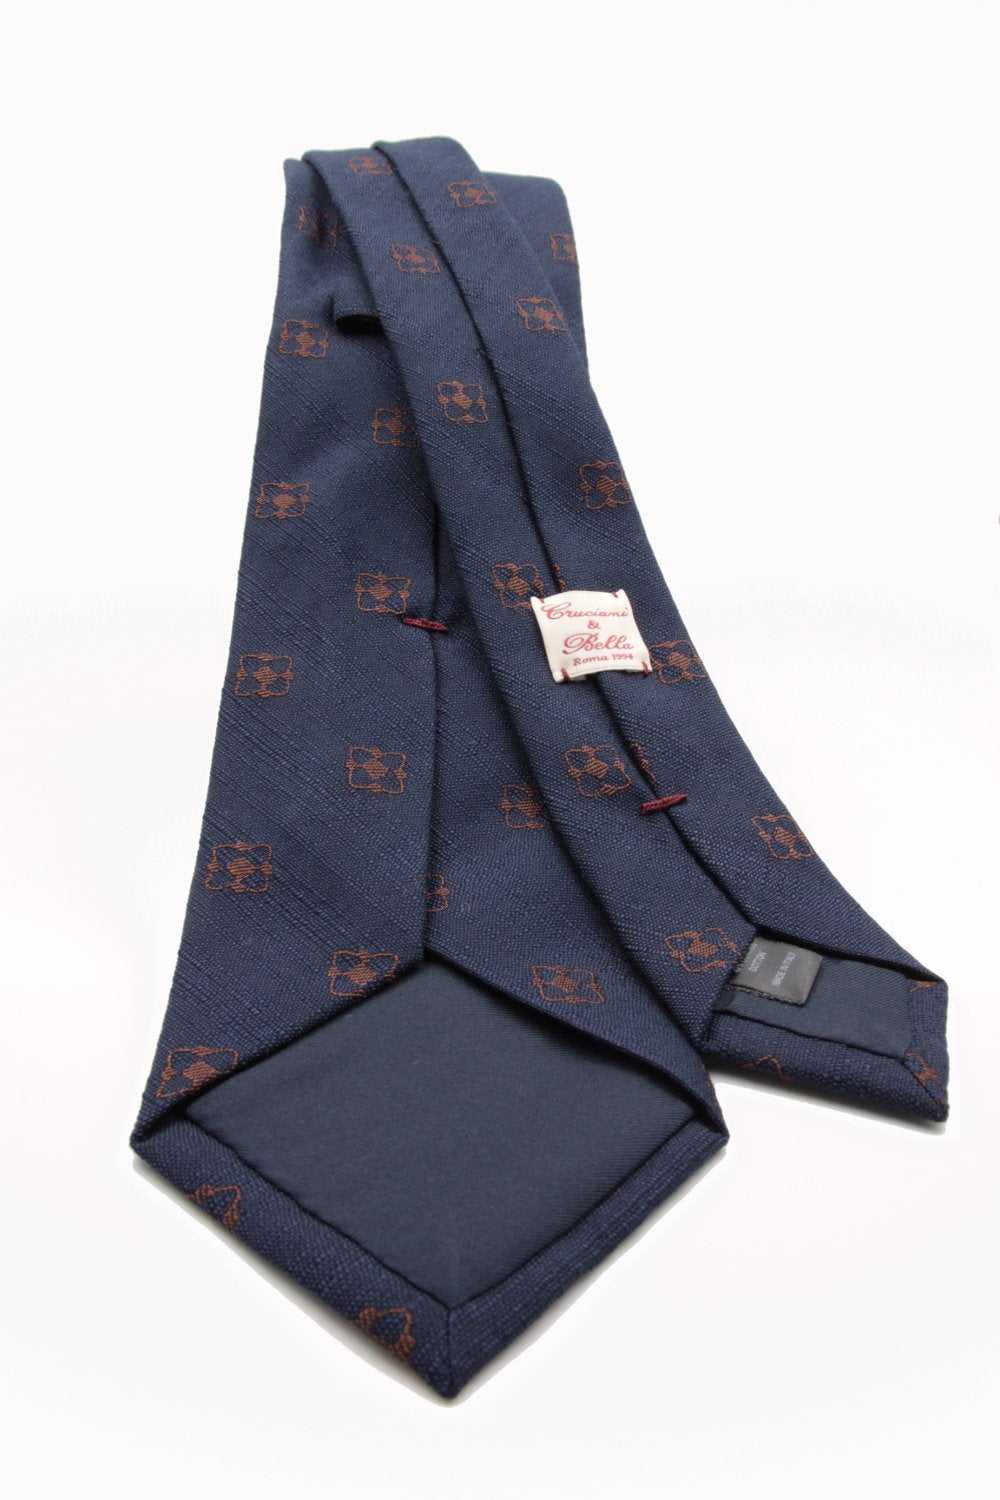 Navy blue, brown flower tie